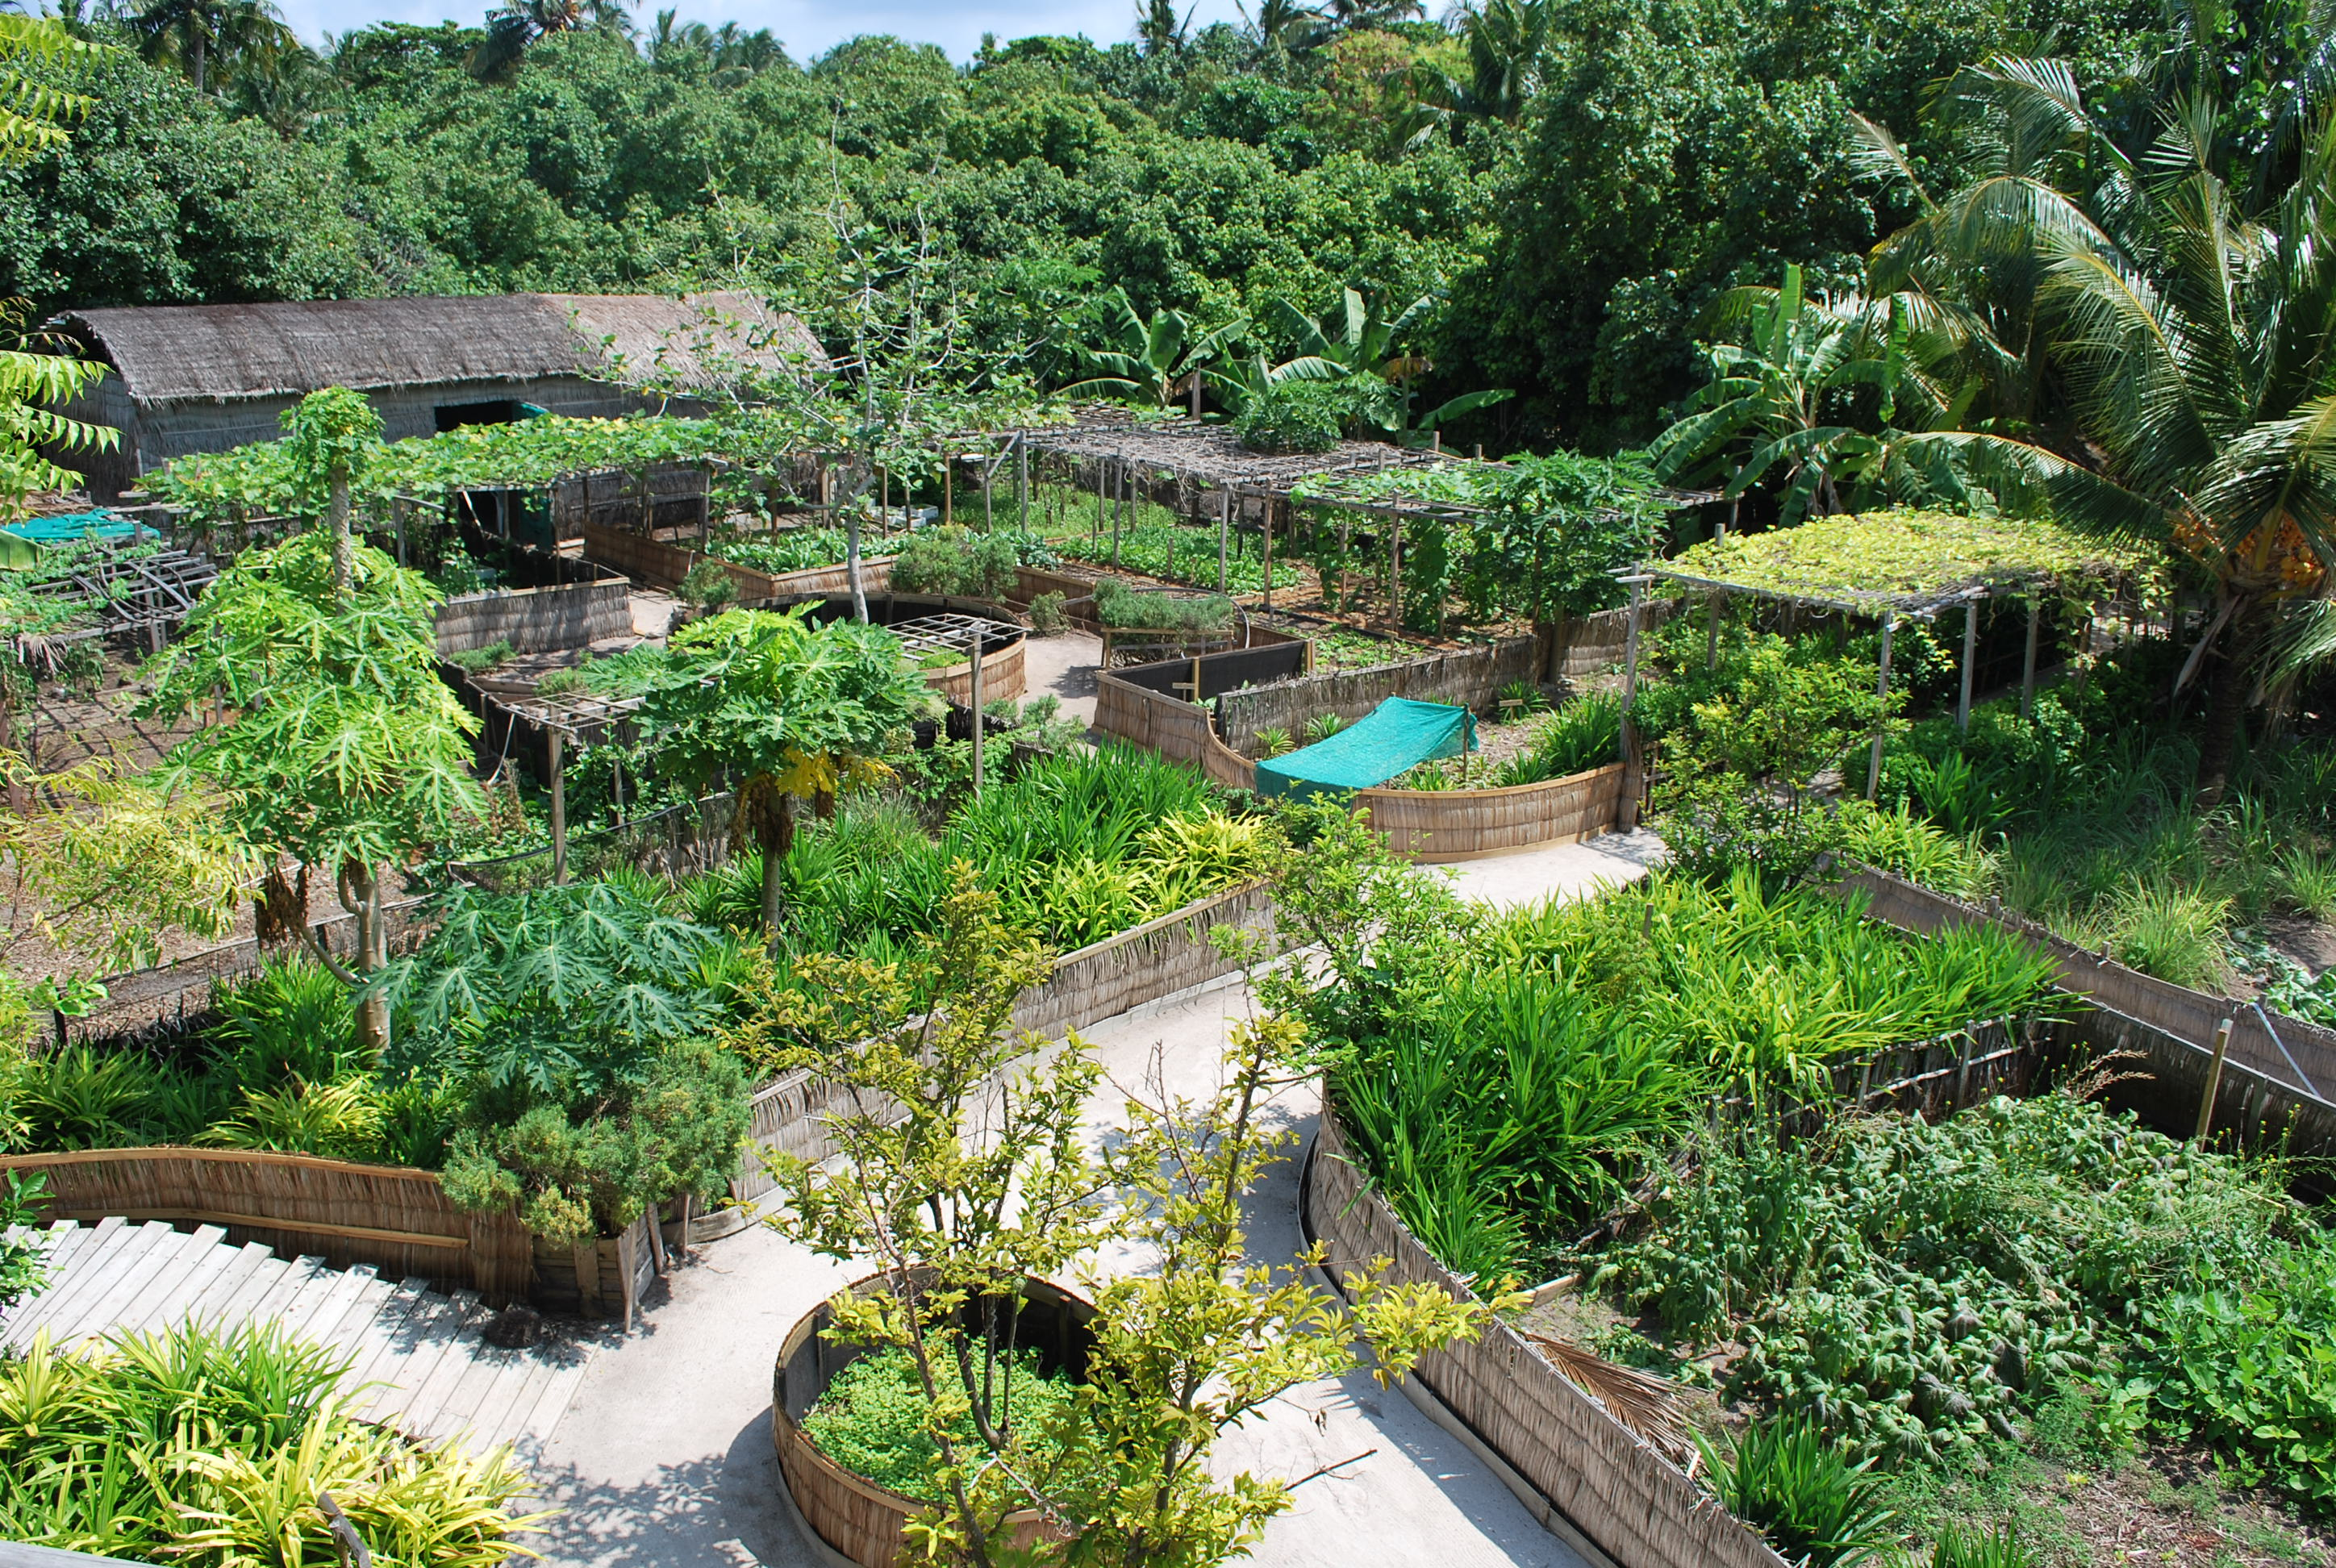 Jardins Permaculture Agroecologie Permaculture Agriculture